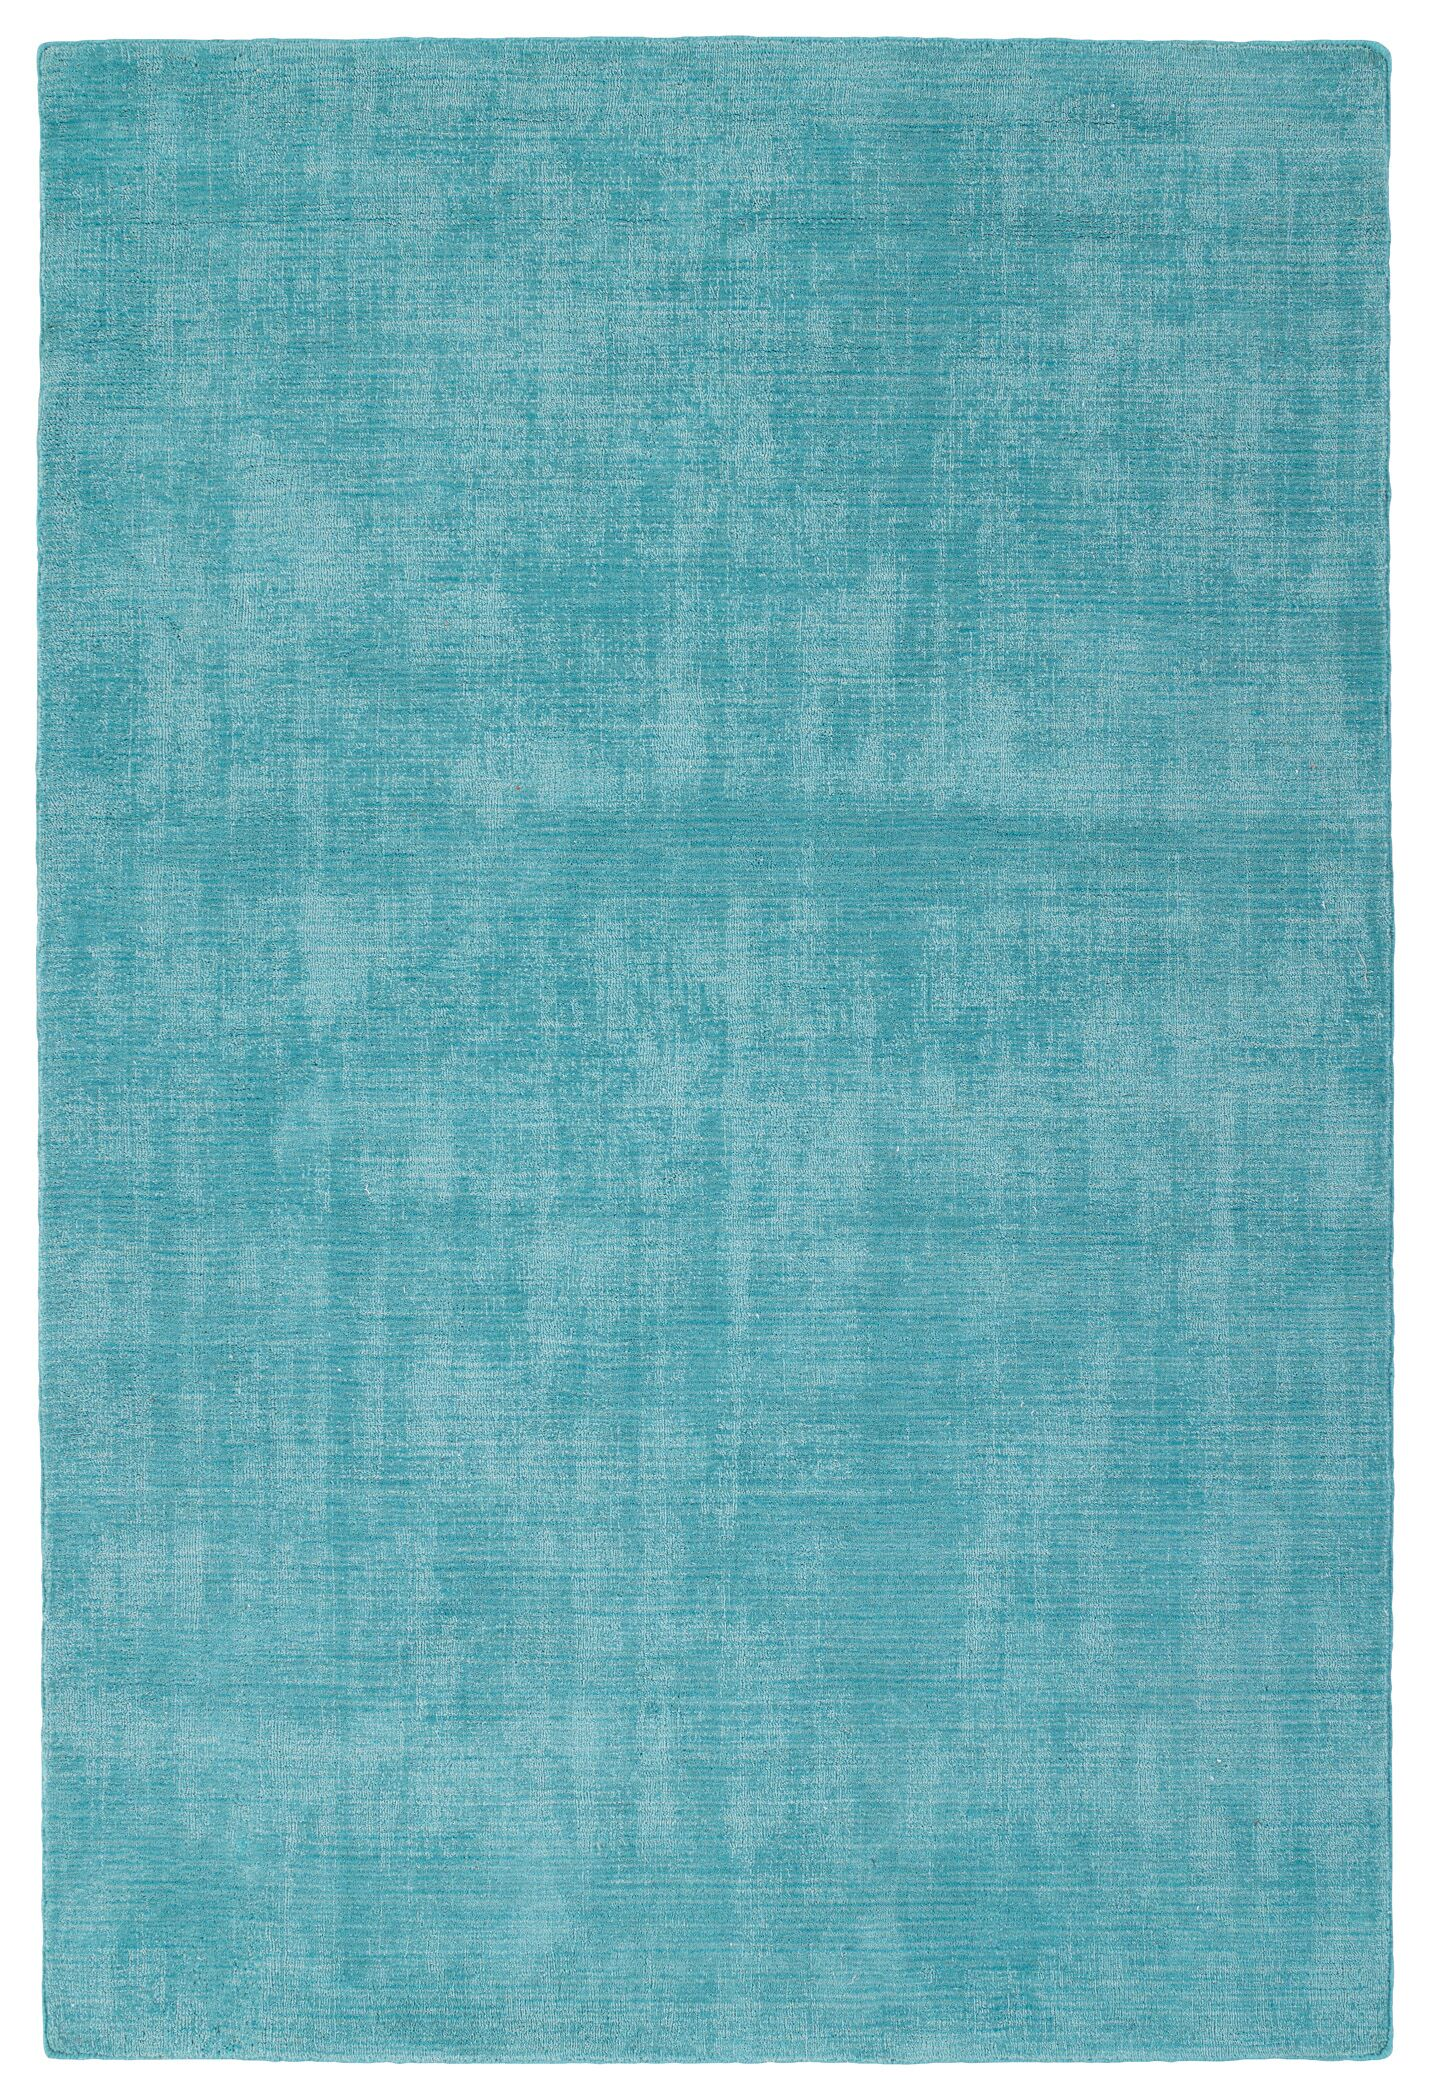 Allibert Hand-Loomed Spa Indoor/Outdoor Area Rug Rug Size: Rectangle 8' x 10'